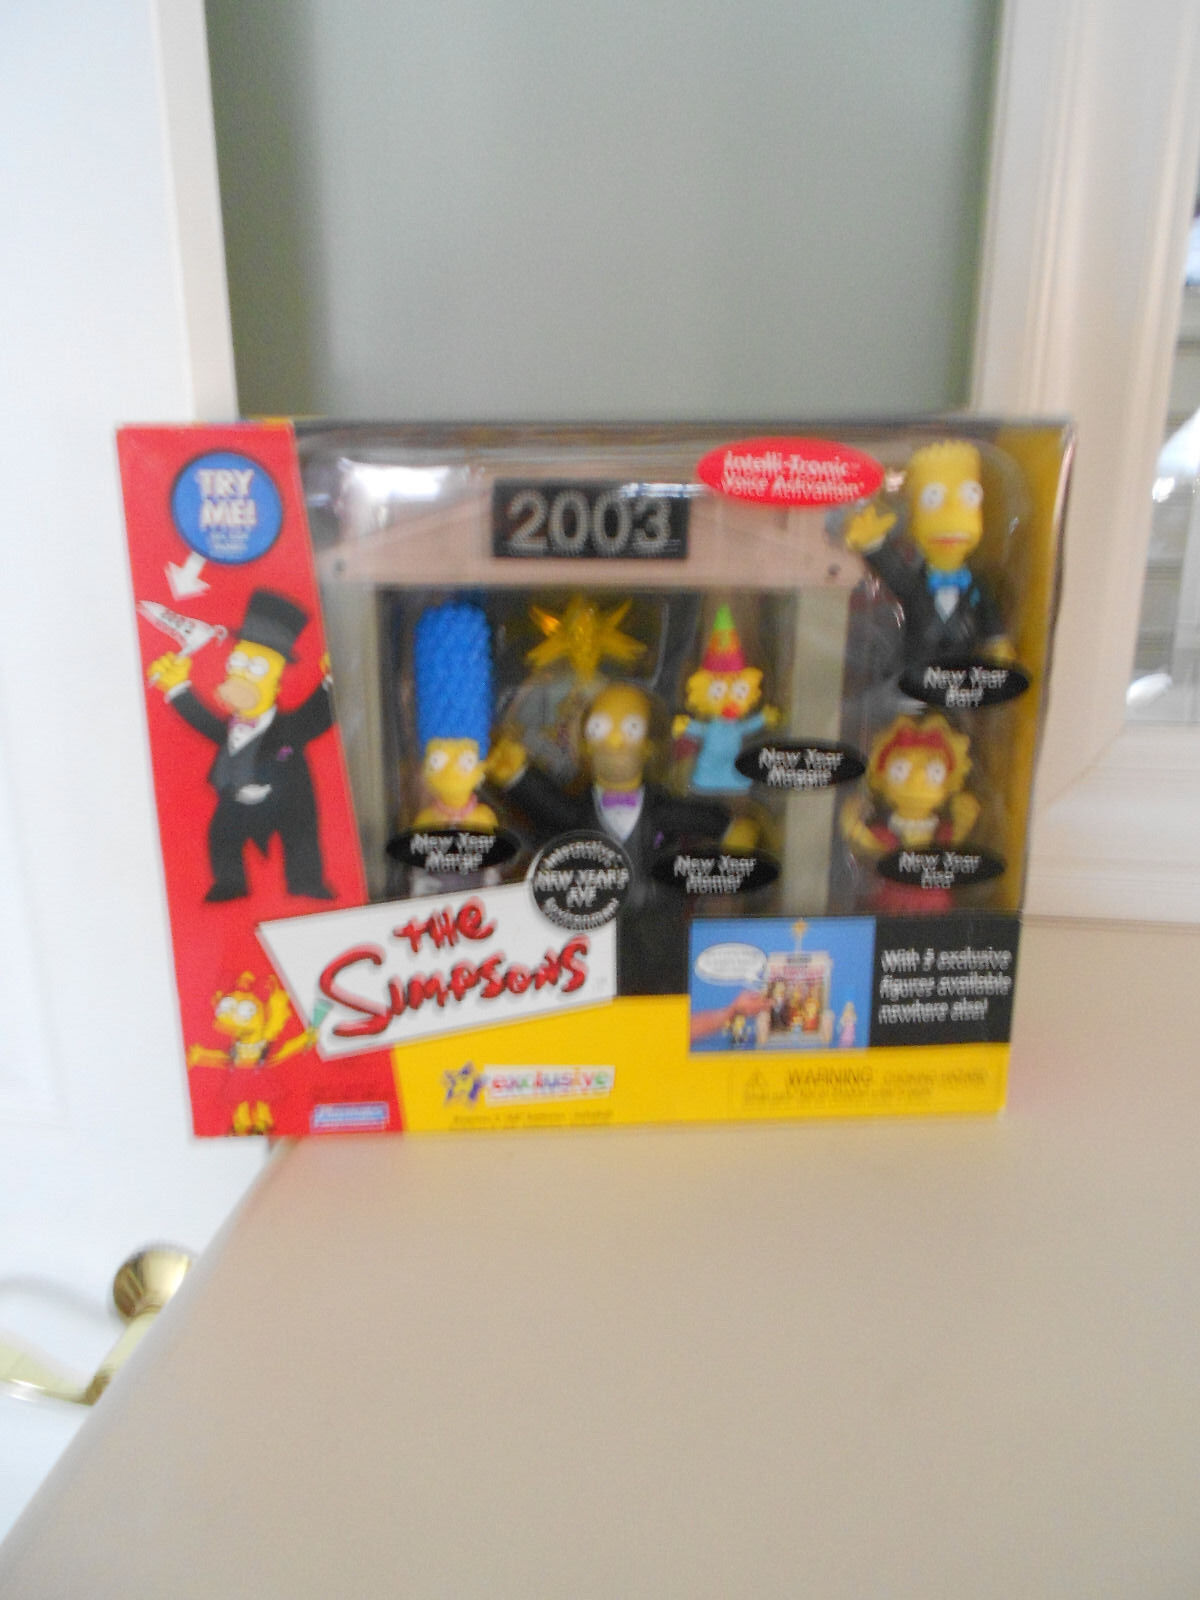 THE SIMPSONS  5 Figure Exclusive New Year's Eve Set, 2003, Intelli-Tronic Voices